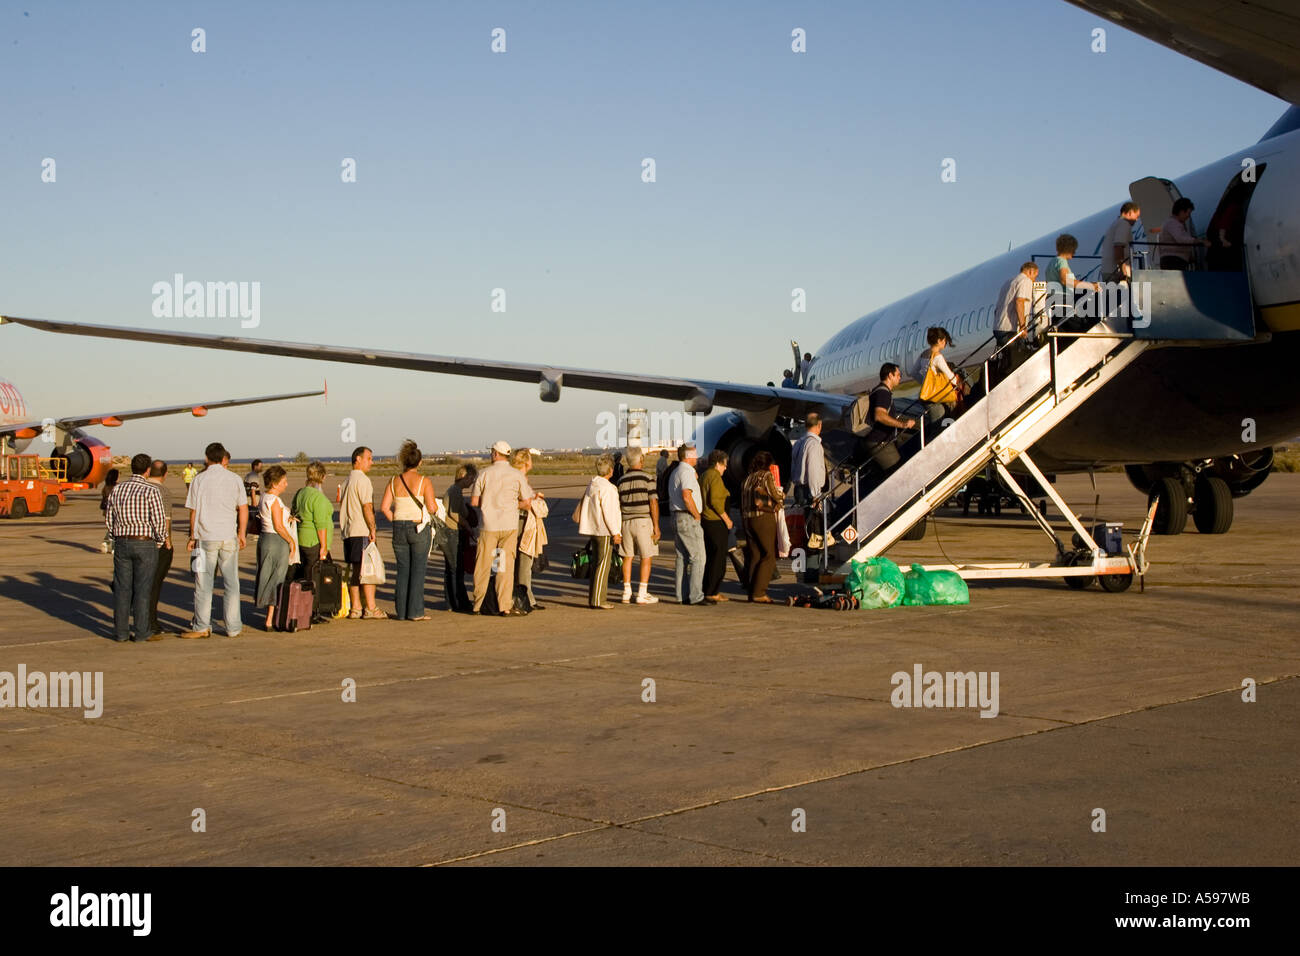 Passengers boarding on ryanair flight Murcia airport Spain - Stock Image